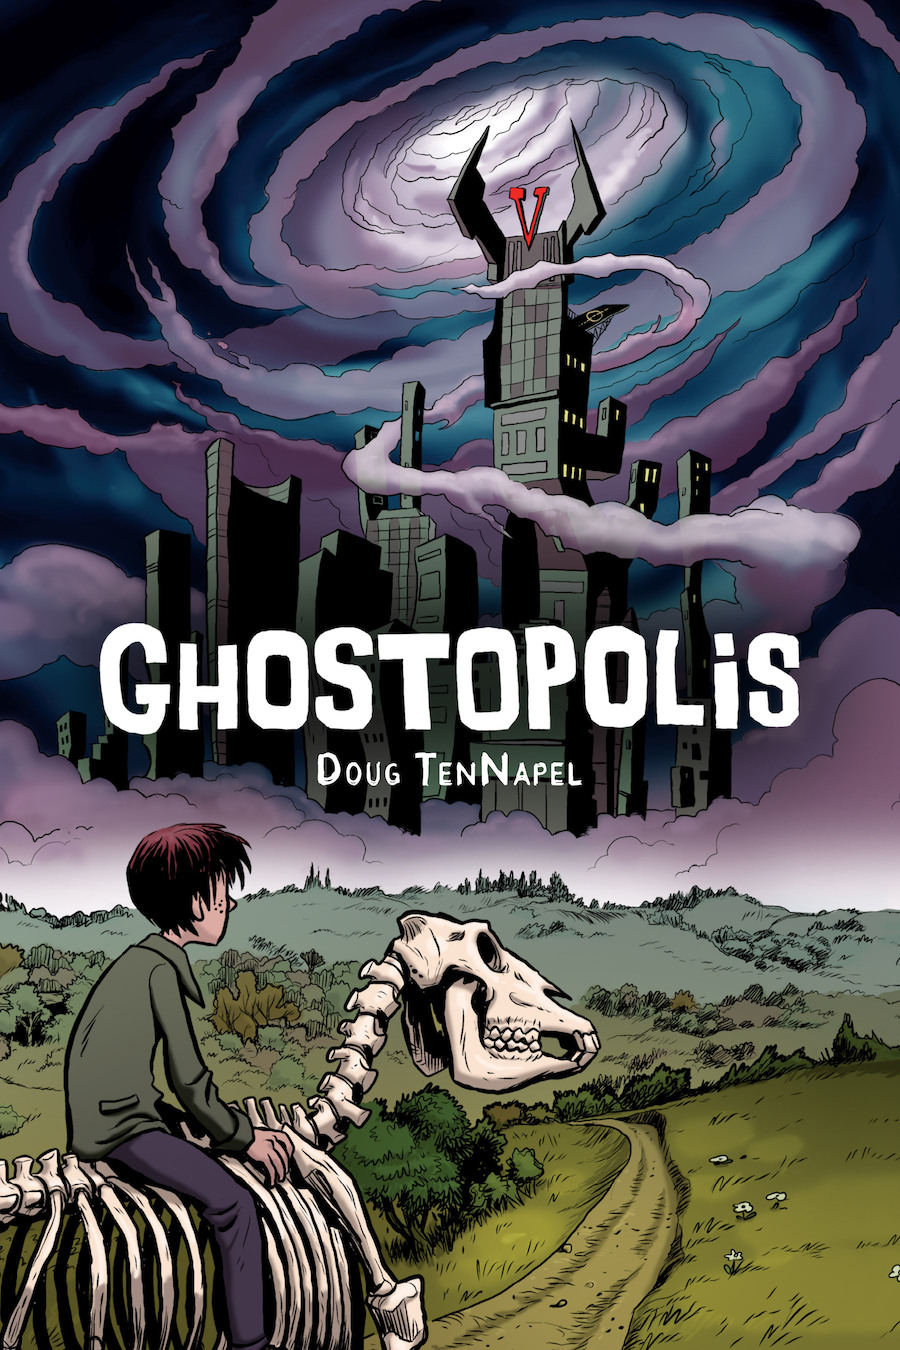 The cover of Ghostopolis